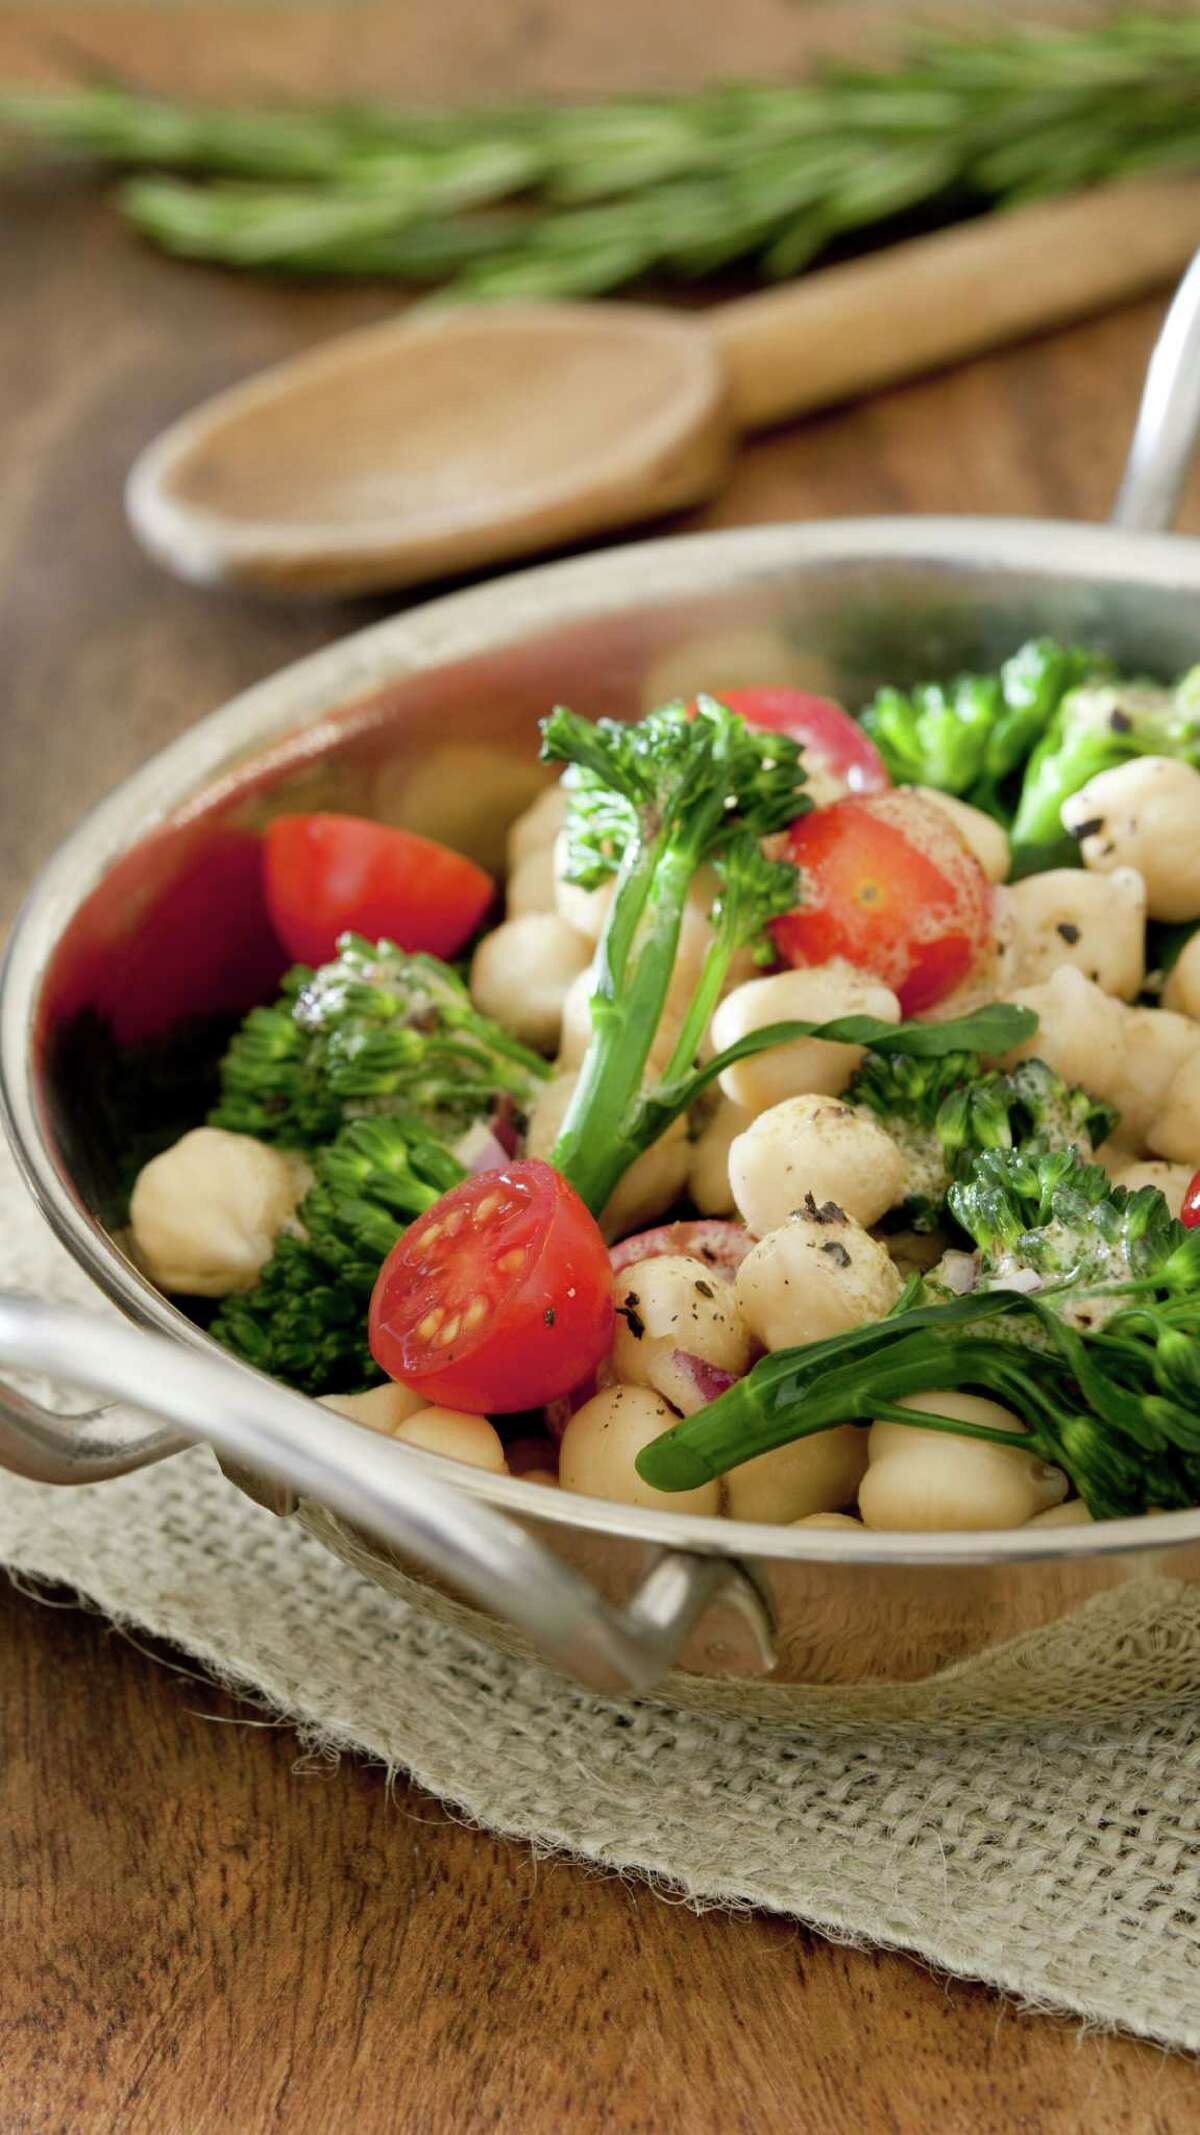 A plant-based diet can help fight inflammation.